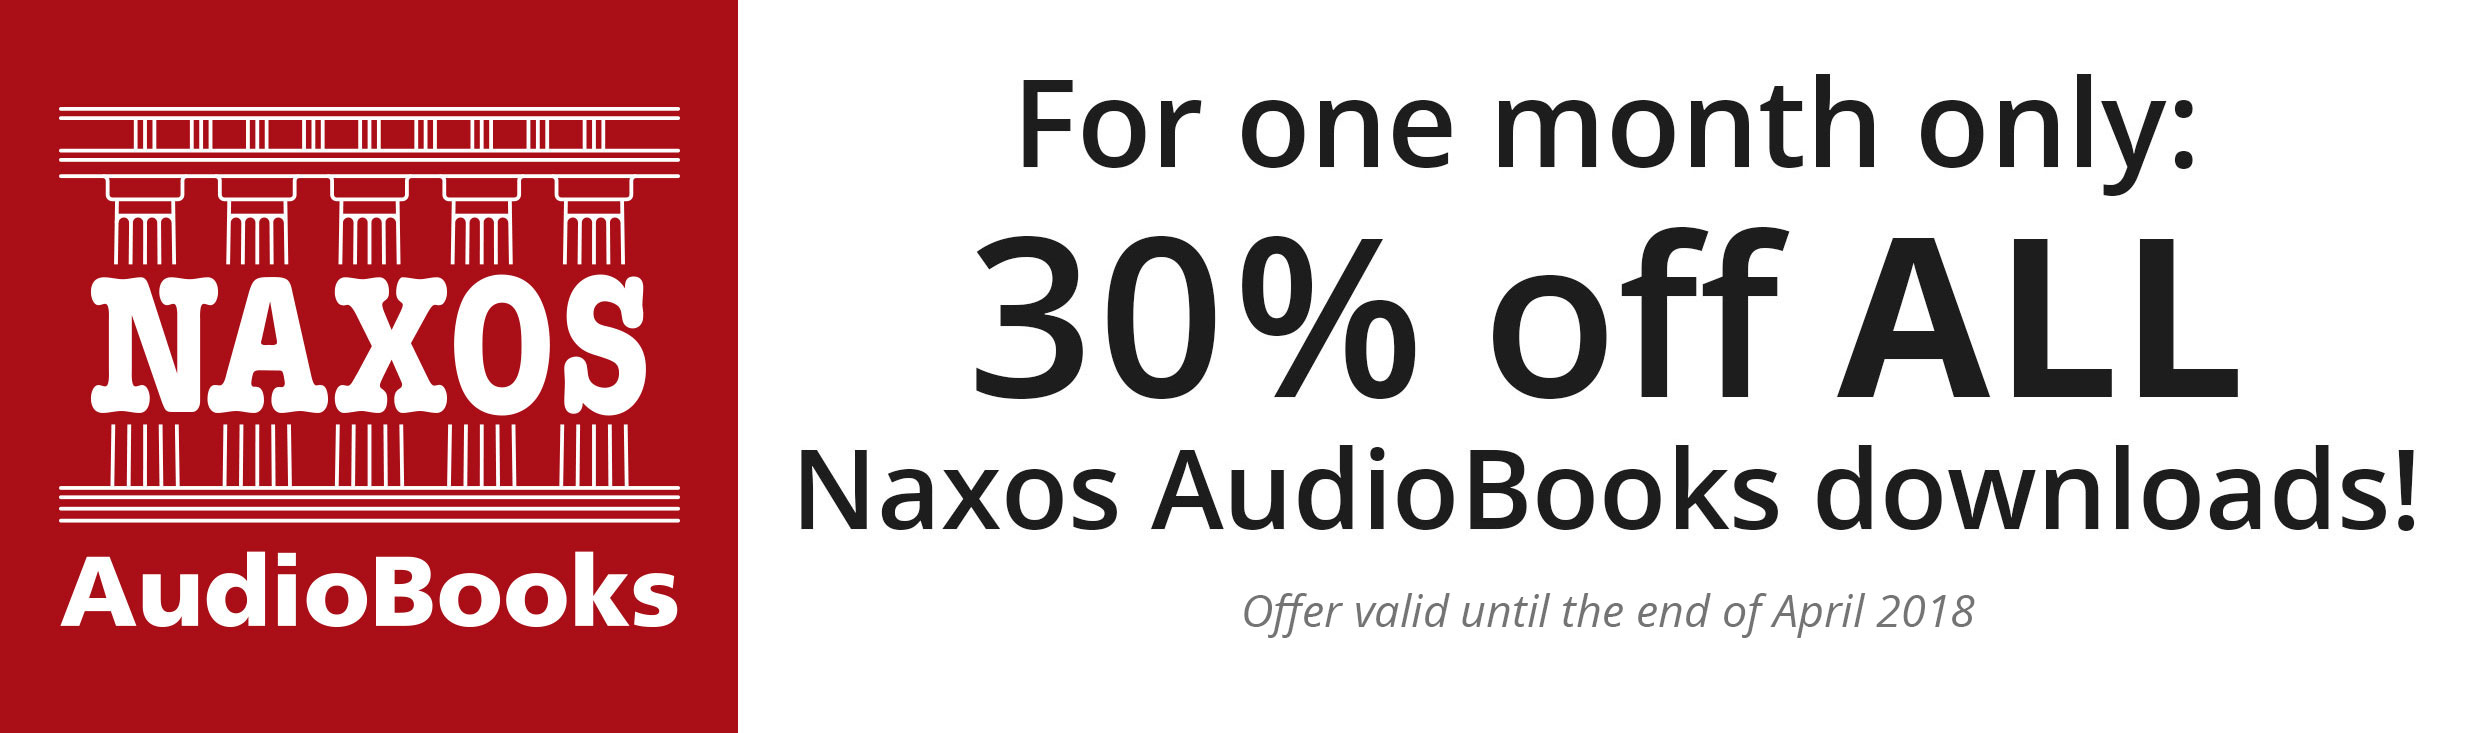 For one month only: 30% off ALL Naxos AudioBooks downloads